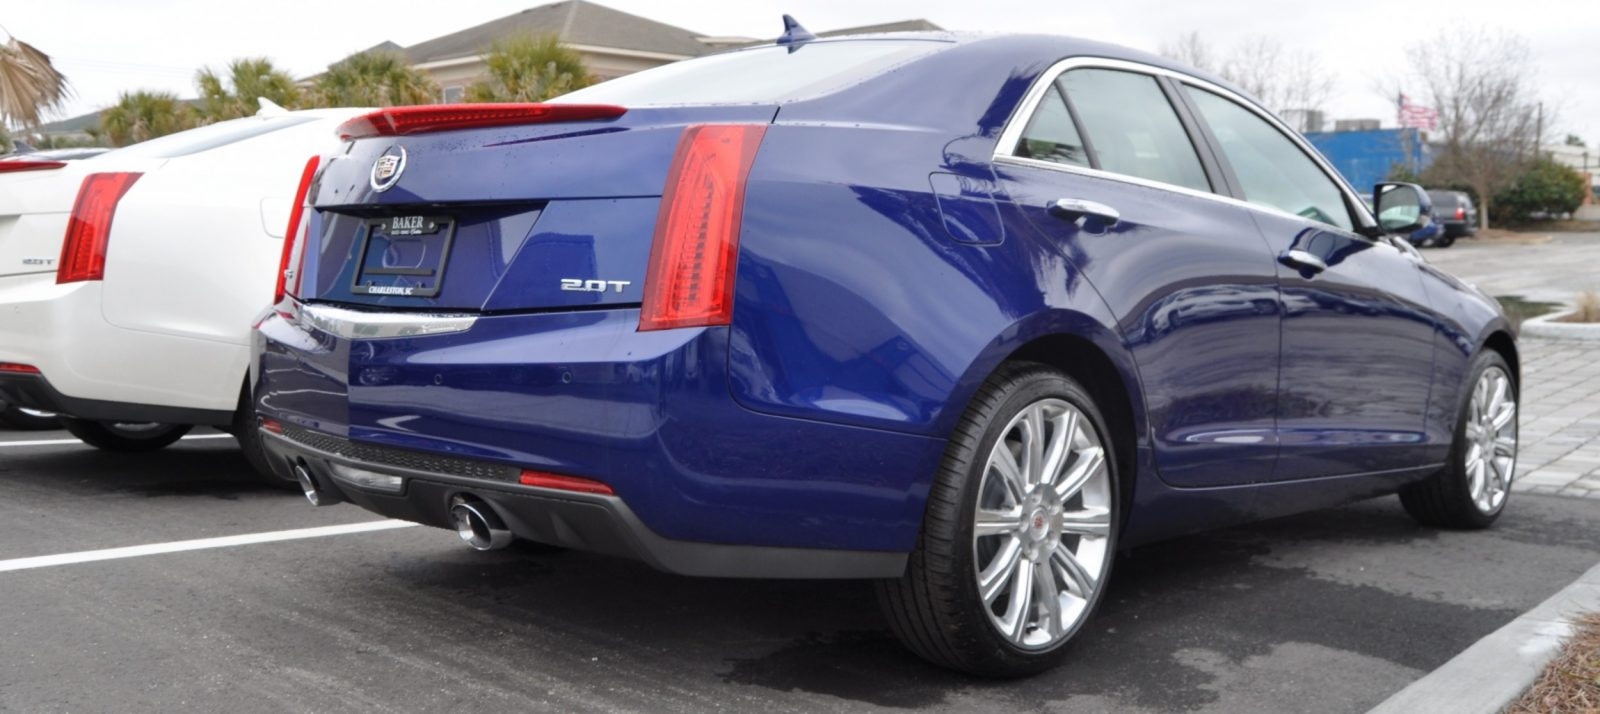 2014 Cadillac ATS4 - High-Res Photos 7